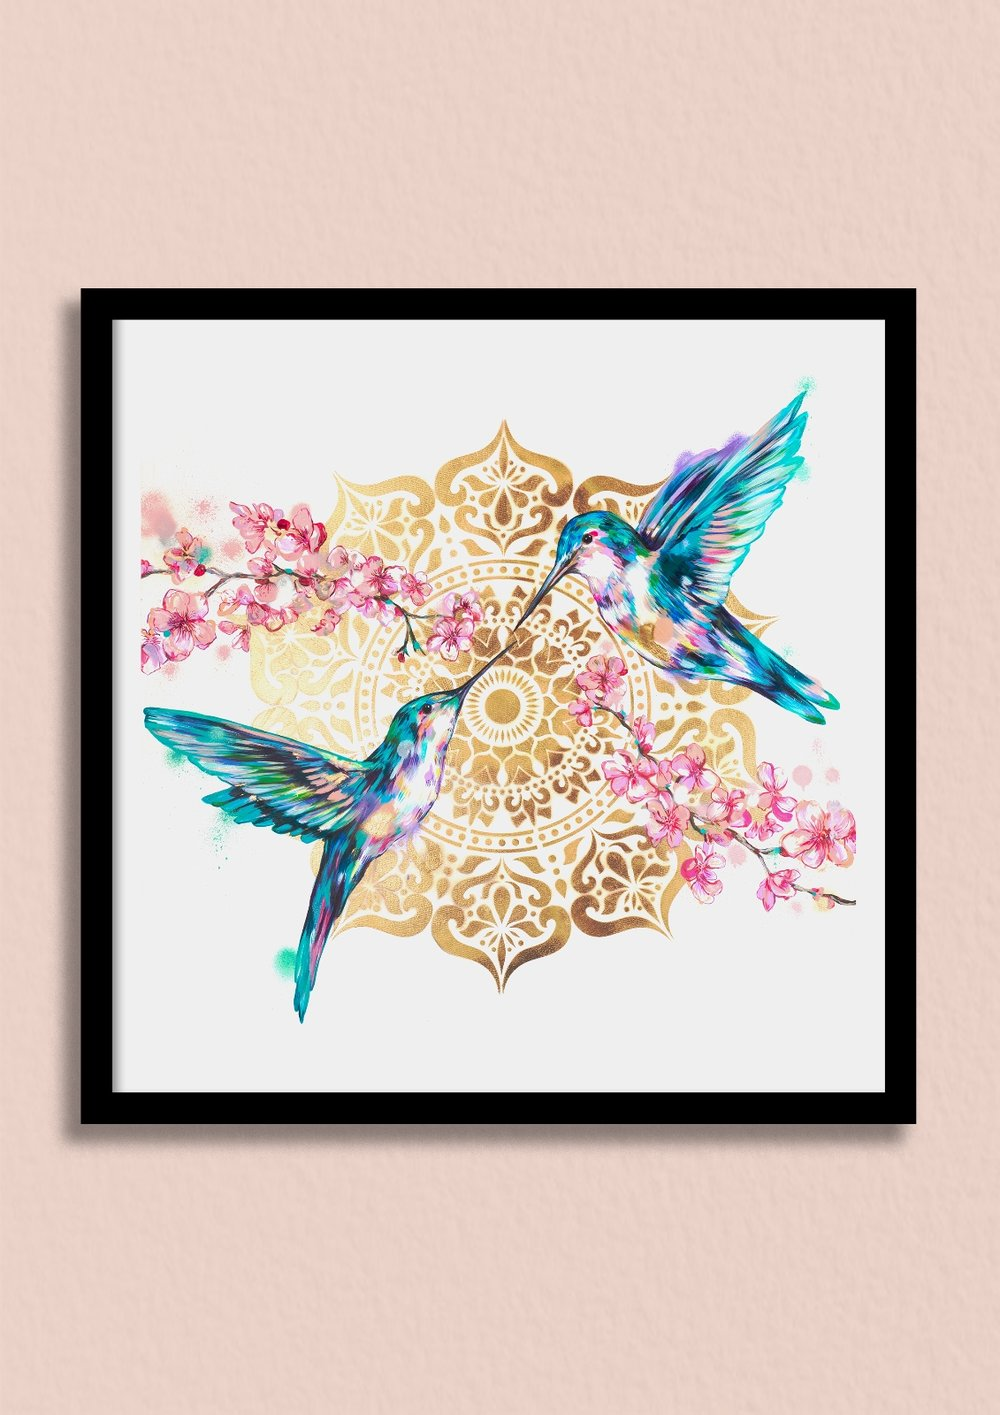 SUNLIT SAKURA - Be inspired by the sheer beauty and symbolism of hummingbirds and Japanese sakura blossoms.Unframed giclée print £150Framed giclée print £220